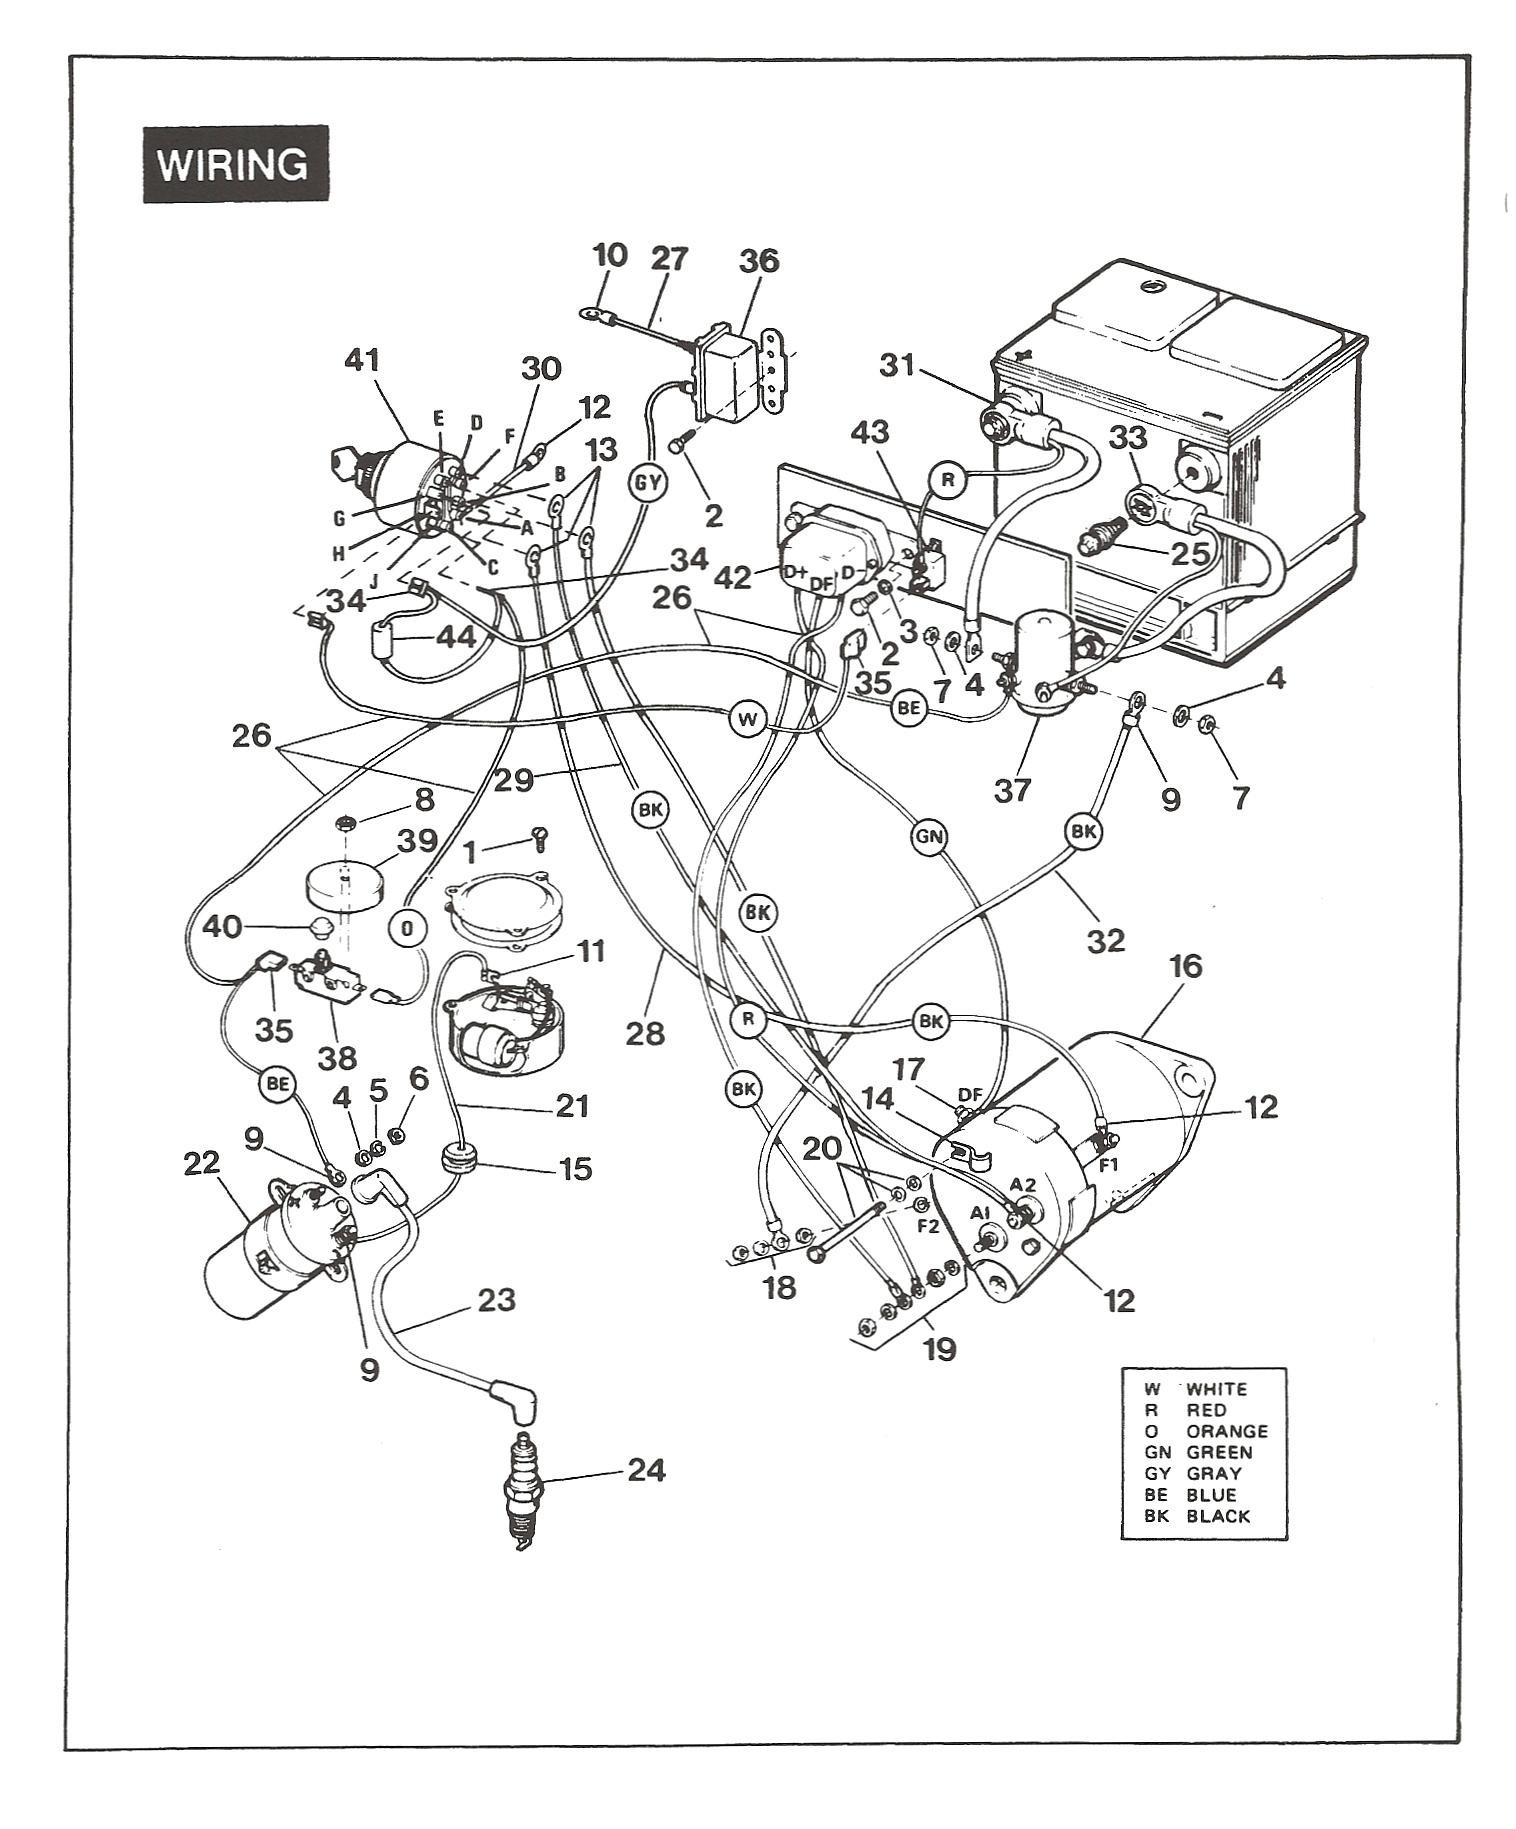 Ezgo Electric Golf Cart Wiring Diagram